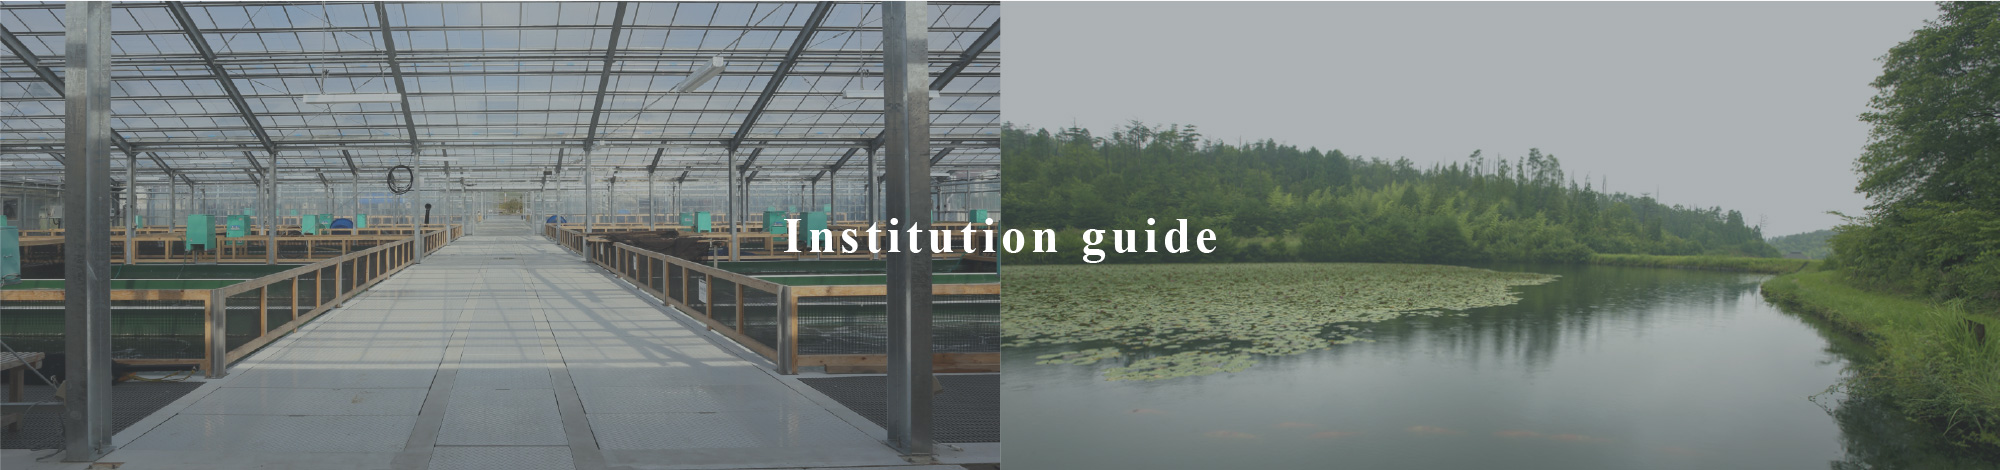 Institution guide